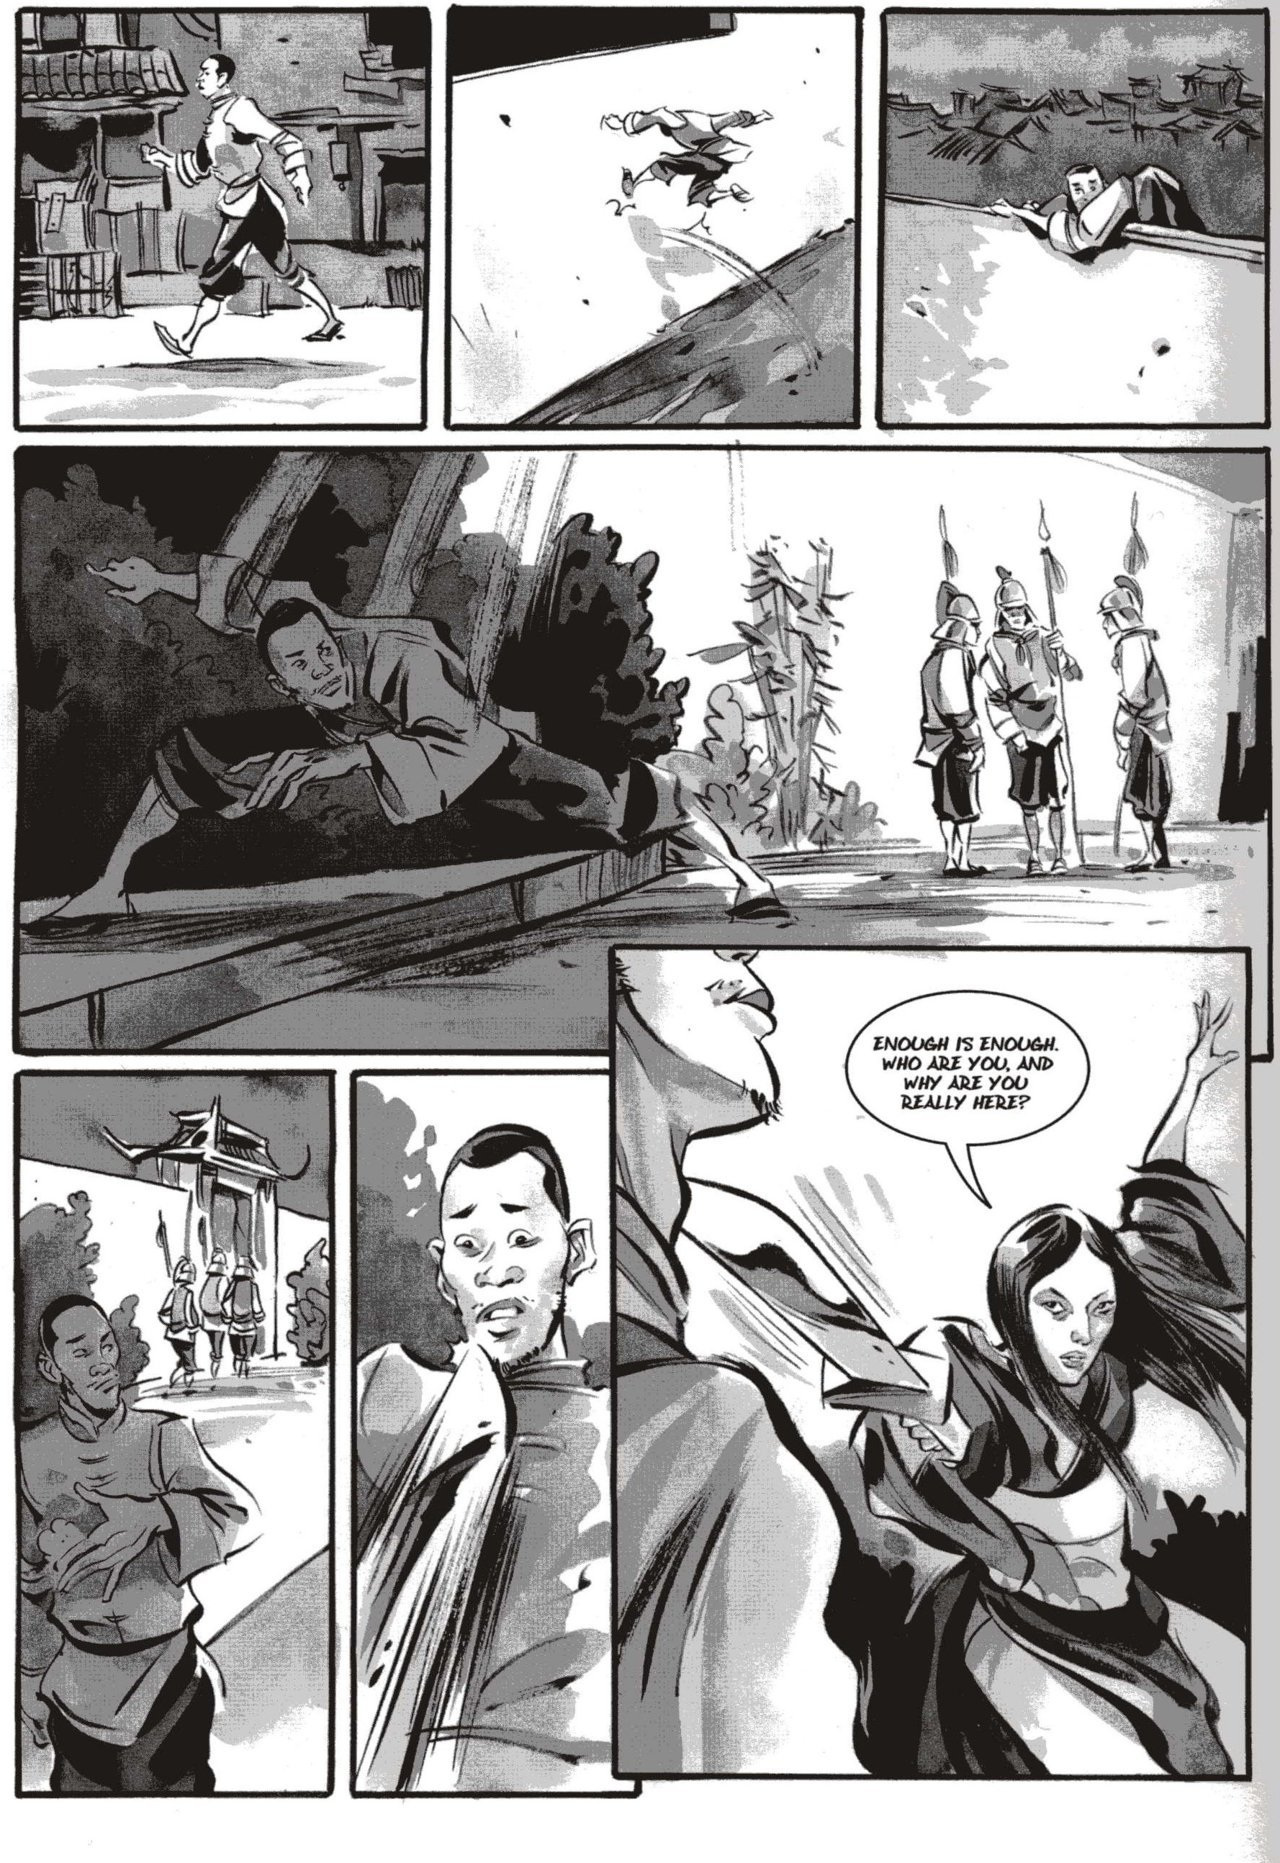 Windy confronts Yang in Kagan McLeod's Infinite Kung Fu. One of the panels from this was used in Comics Editor Carol's piece on IKF. Read a preview of IKF here.